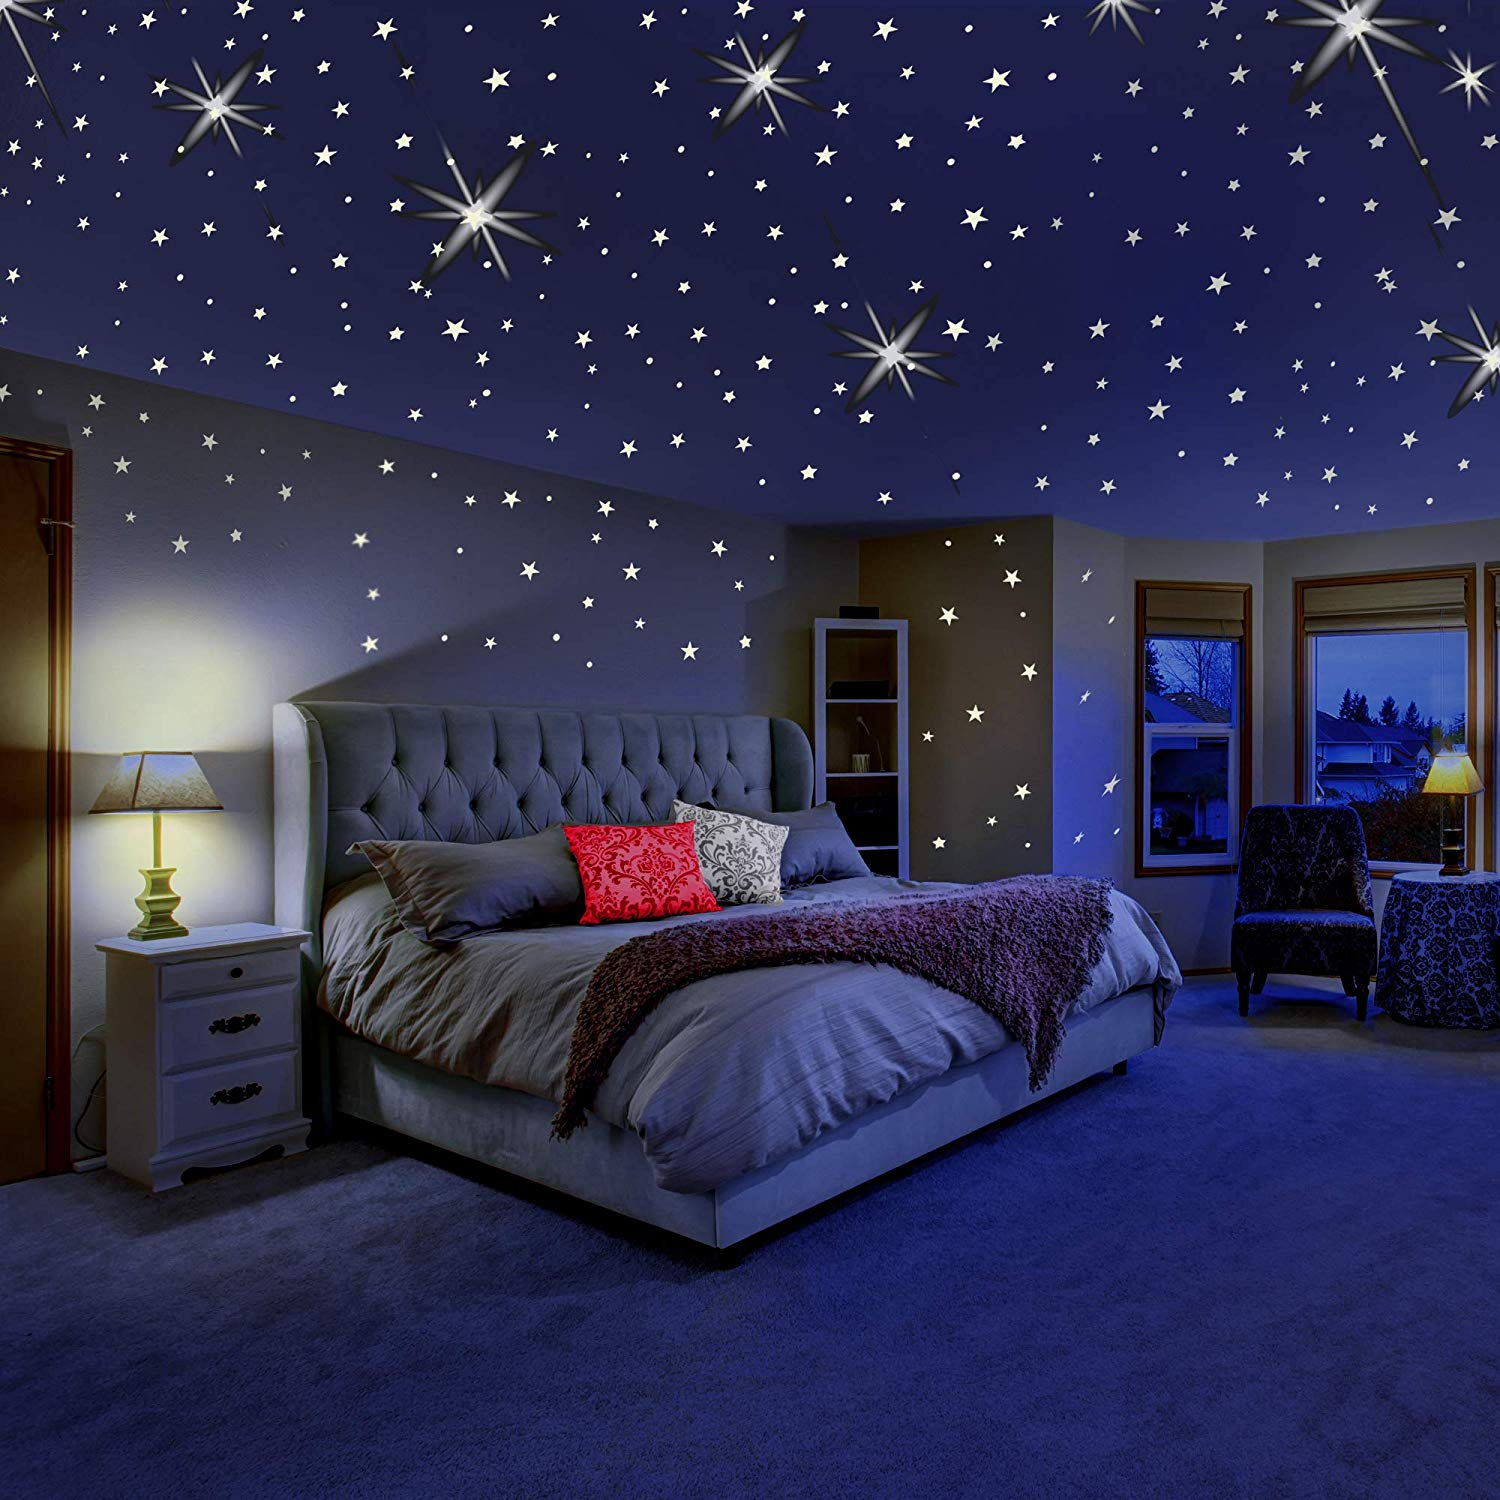 Tayyakoushi Glowing Wall Decals Room Decor Kit Glow In The Dark Stars For Ceiling Or Wall Stickers Galaxy Glow Star Set And Solar System Decal For Kids Bedroom Decoration Home Decor Walmart Com